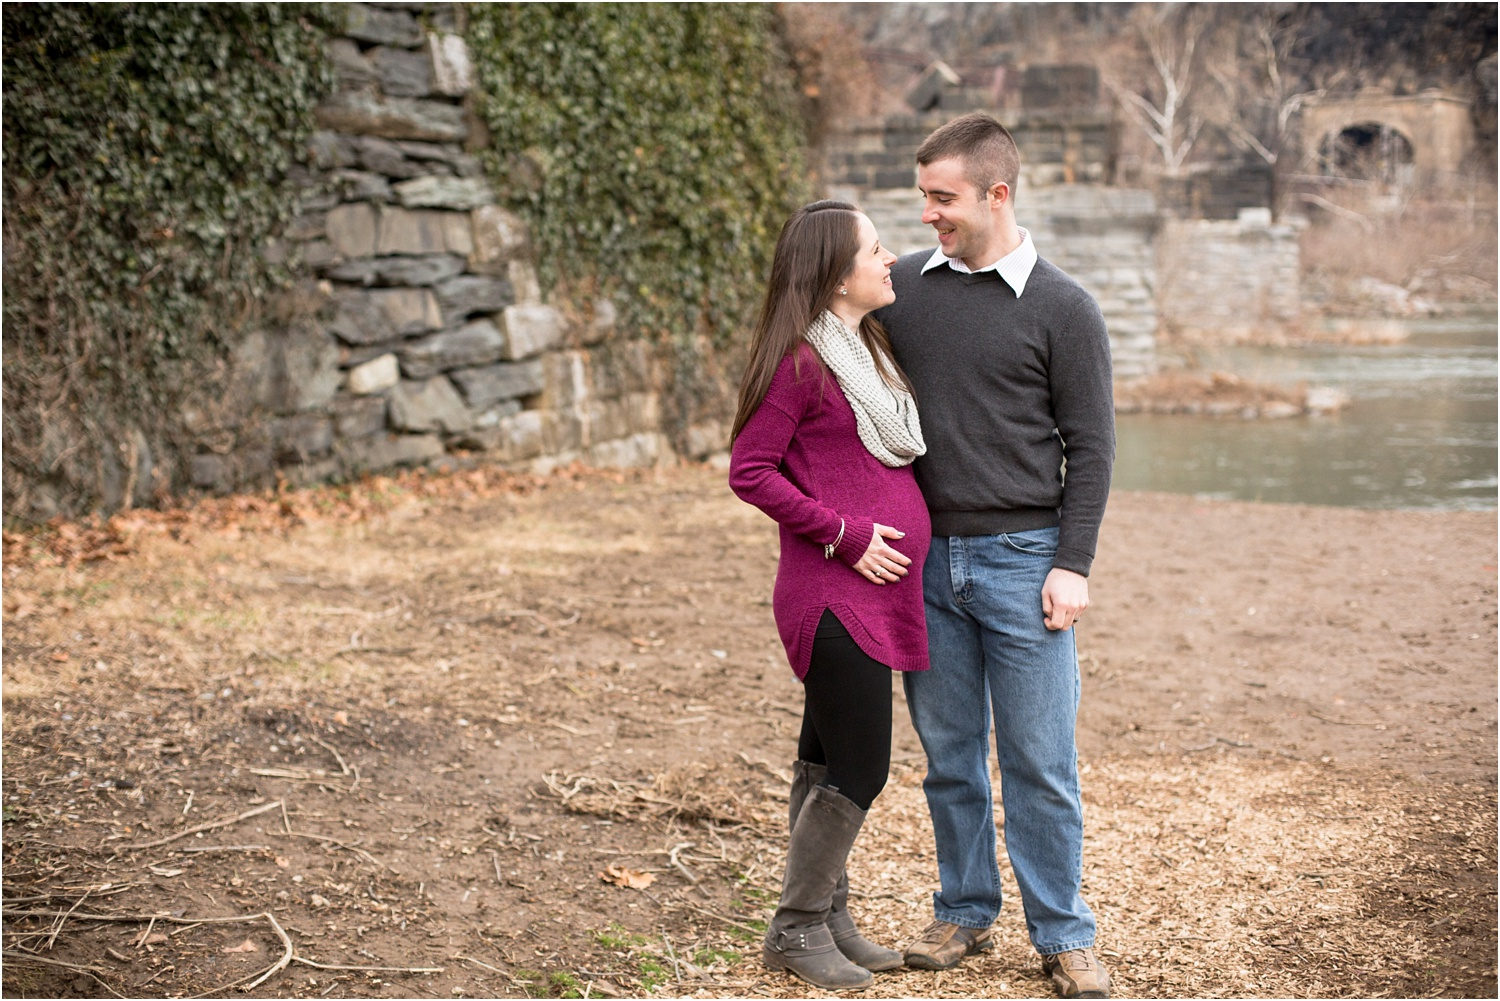 Kuklis_Harrisonburg_Va_Family_Photography_0003.jpg